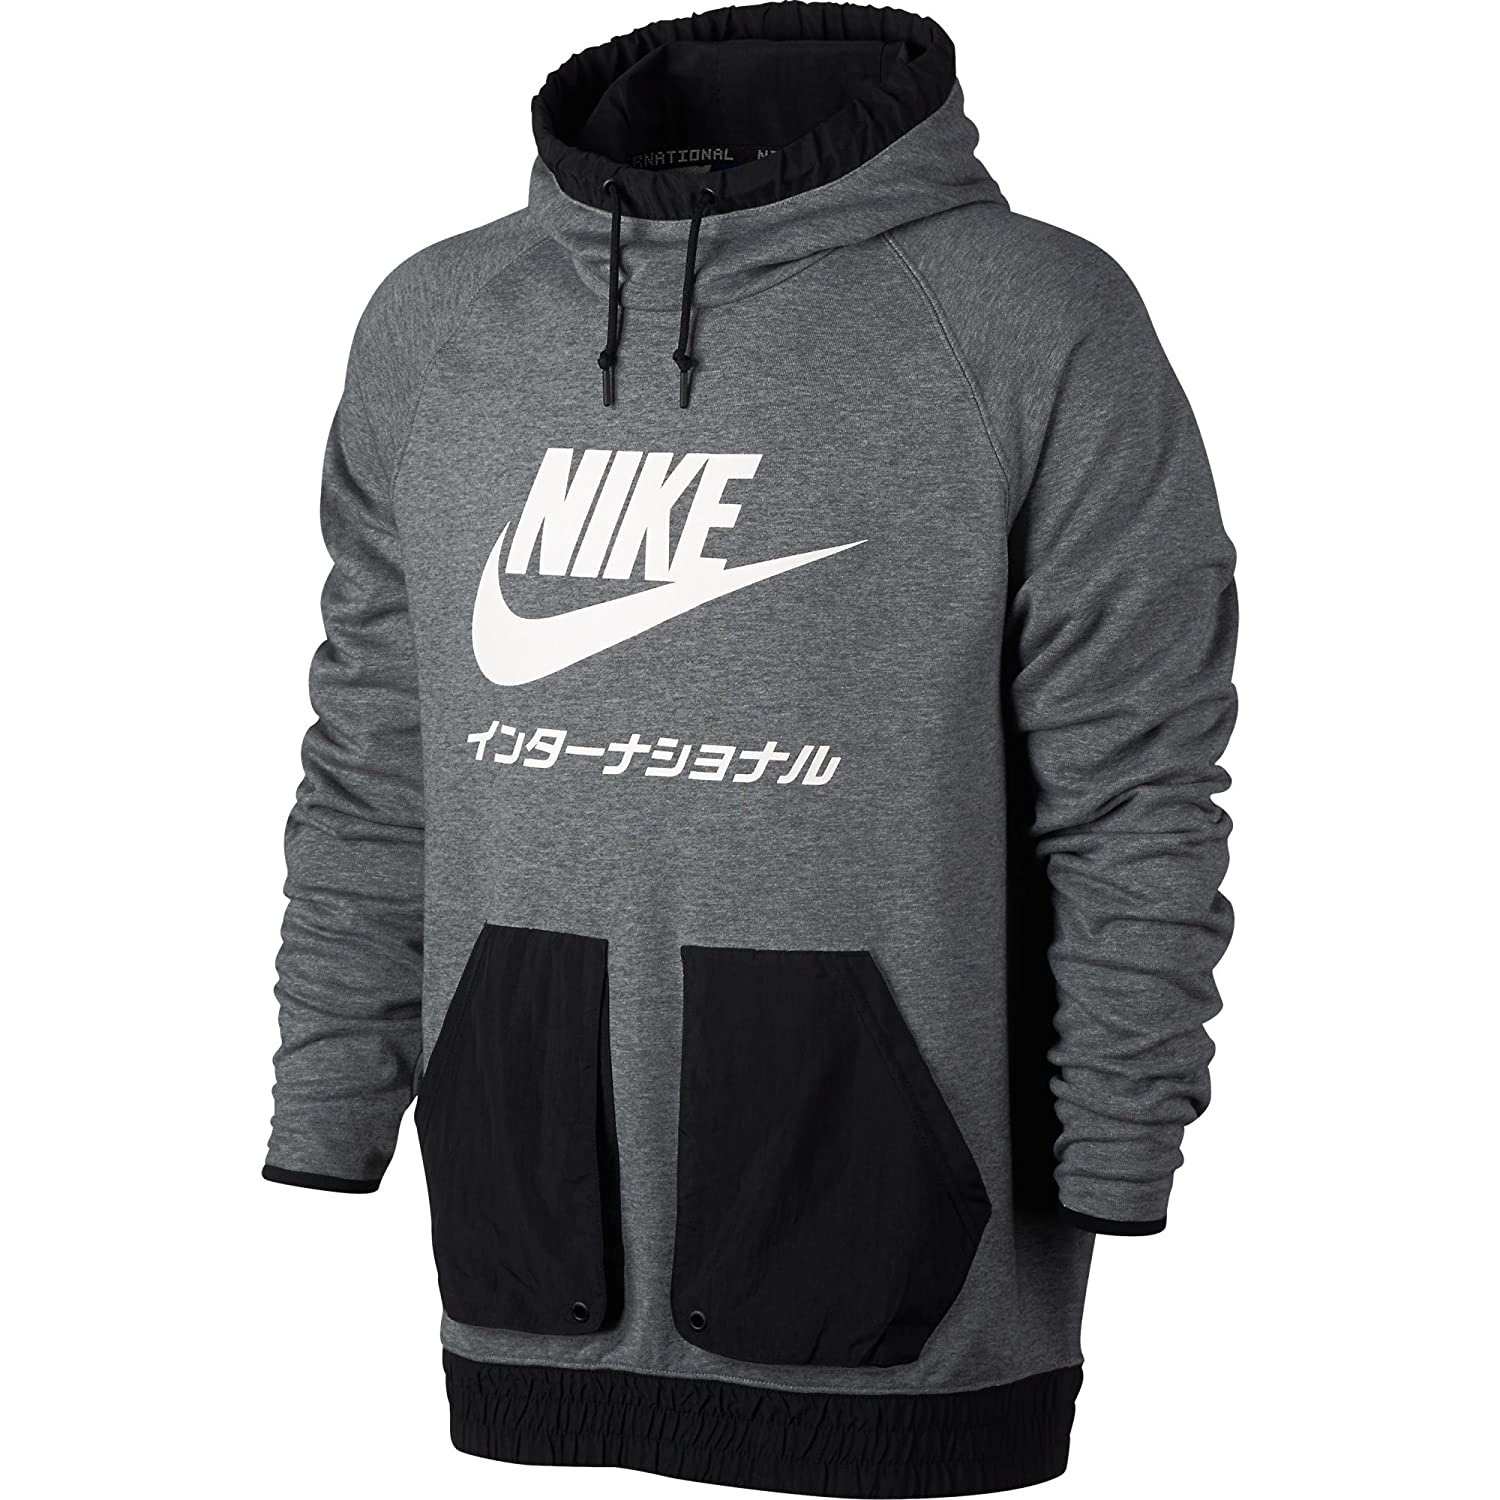 69766c43 Nike International Men's Pull Over Hoodie Carbon Heather/Black/White  831132-091 at Amazon Men's Clothing store: